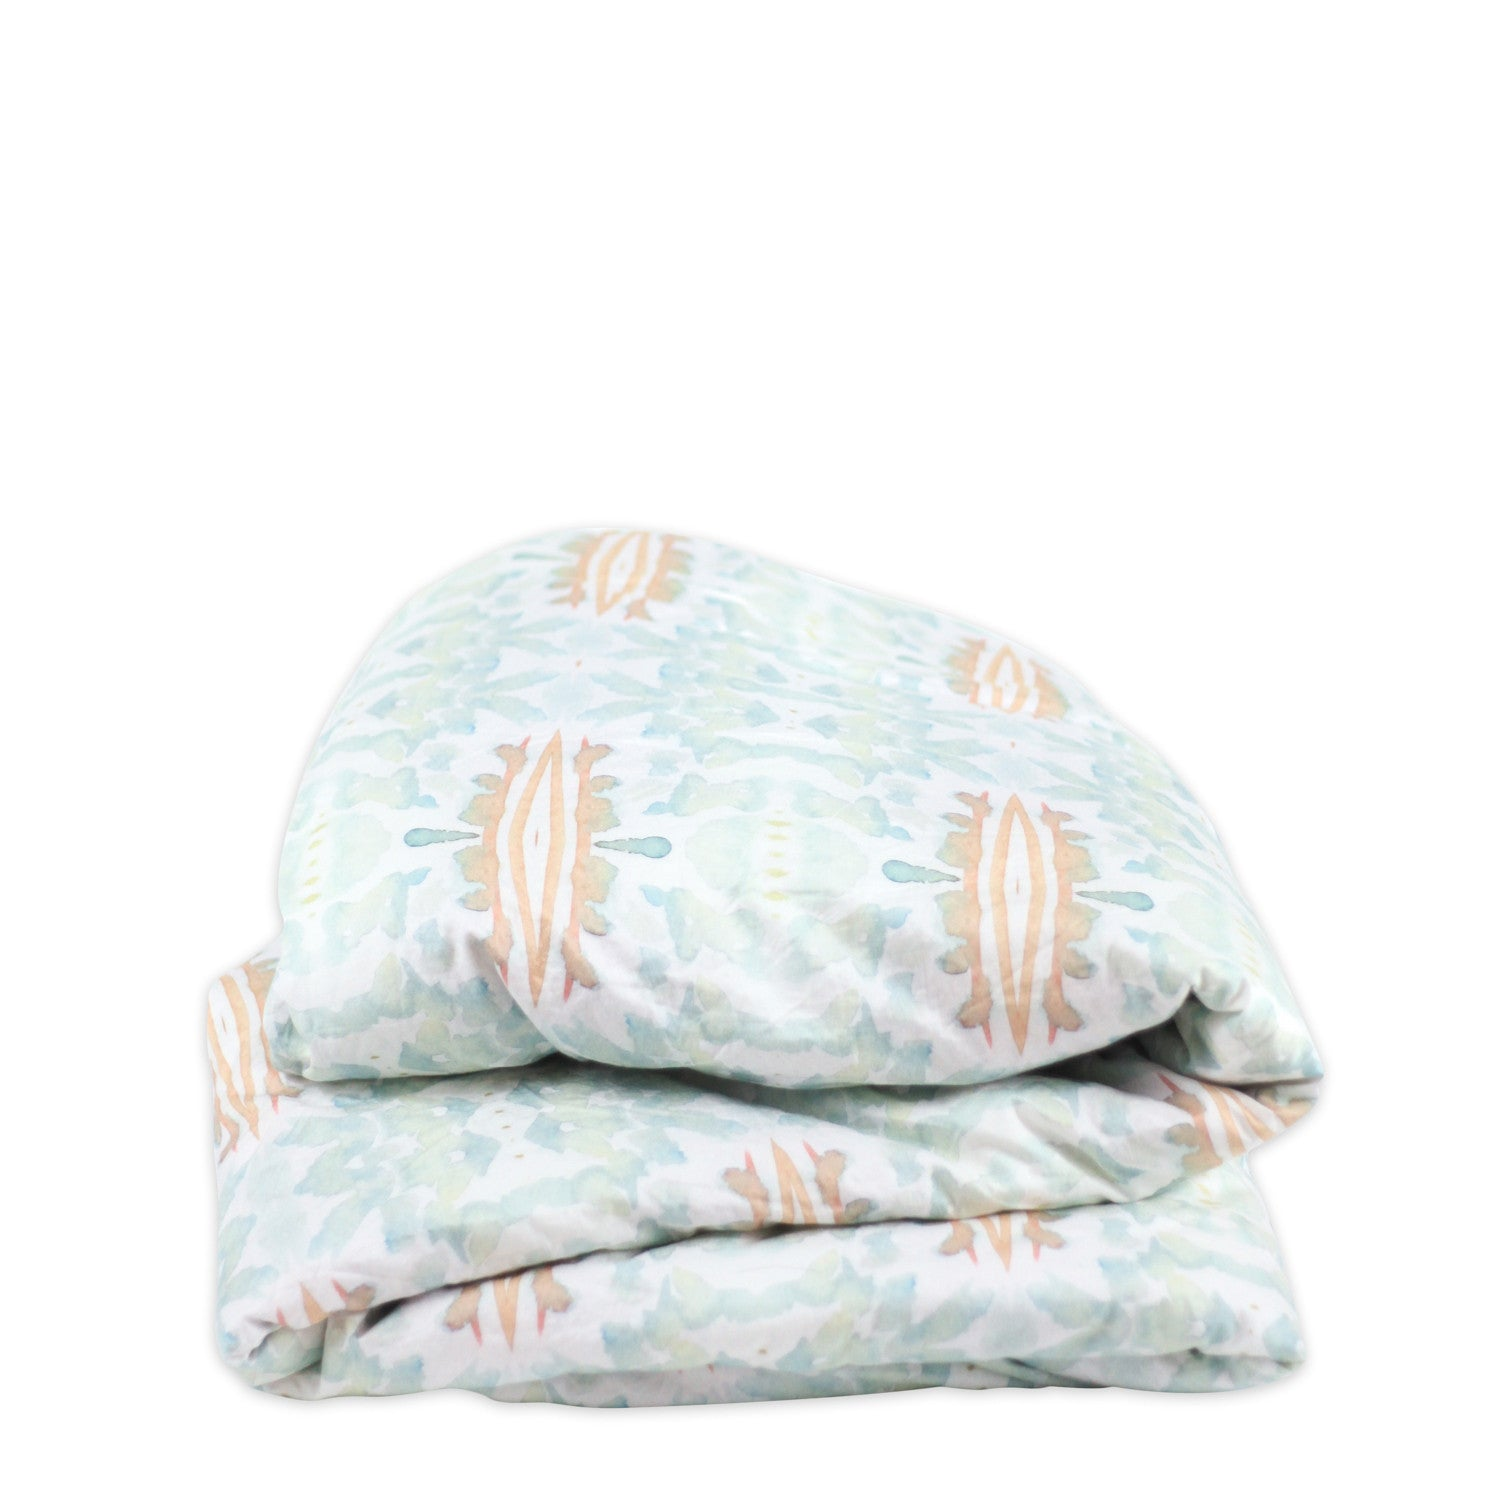 LIGHT BLUE SKY duvet - bunglo by shay spaniola - 2